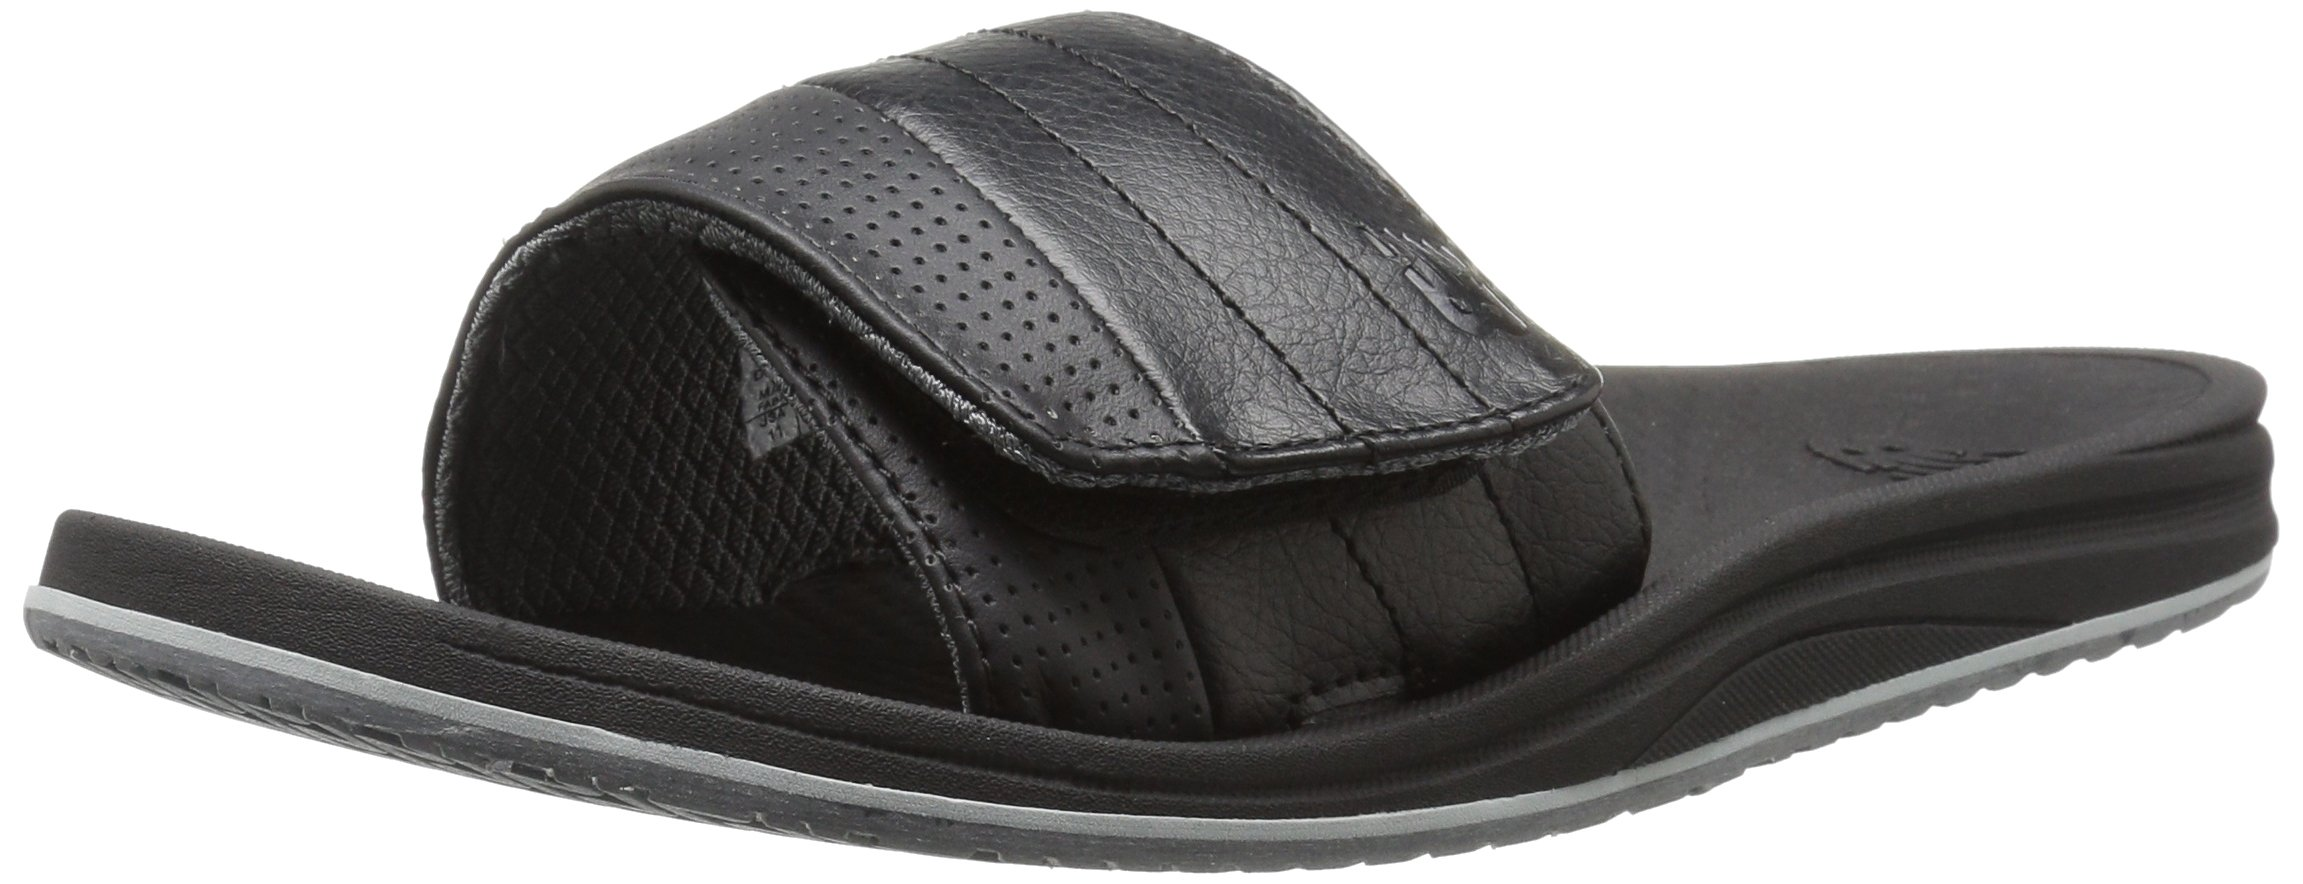 New Balance Men's Recharge Slide Sandal, Black/Grey, 11 4E US by New Balance